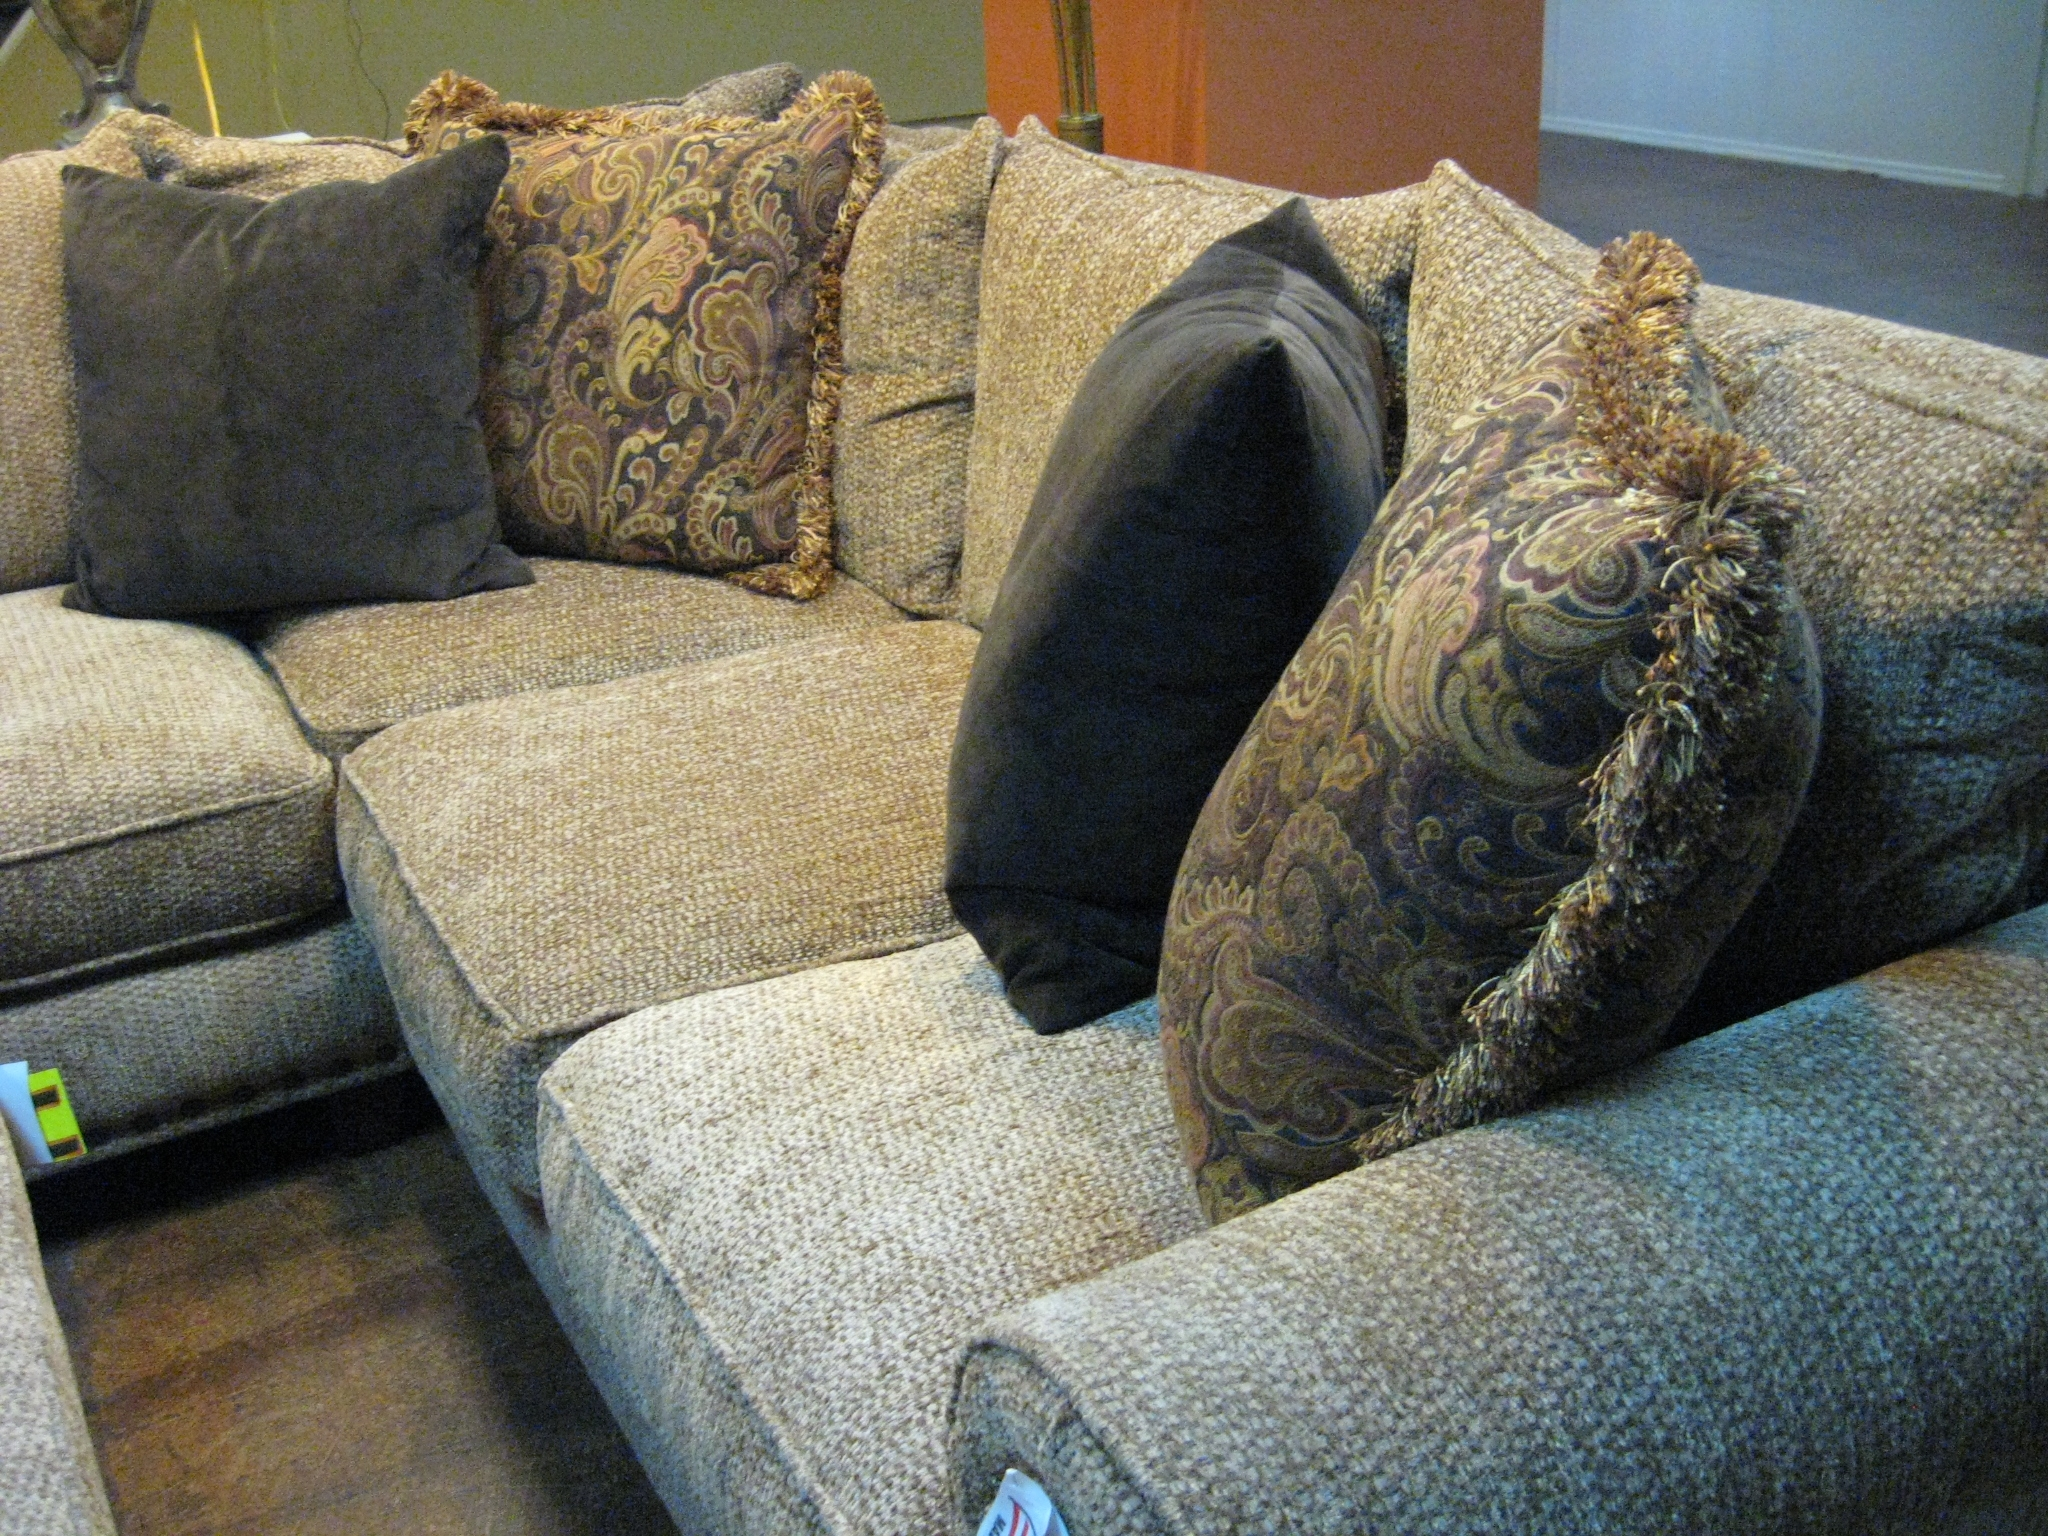 Robert Michael Sectional Sofa Phoenix Arizona Discount Outlet Regarding Down Filled Sectional Sofas (#9 of 12)